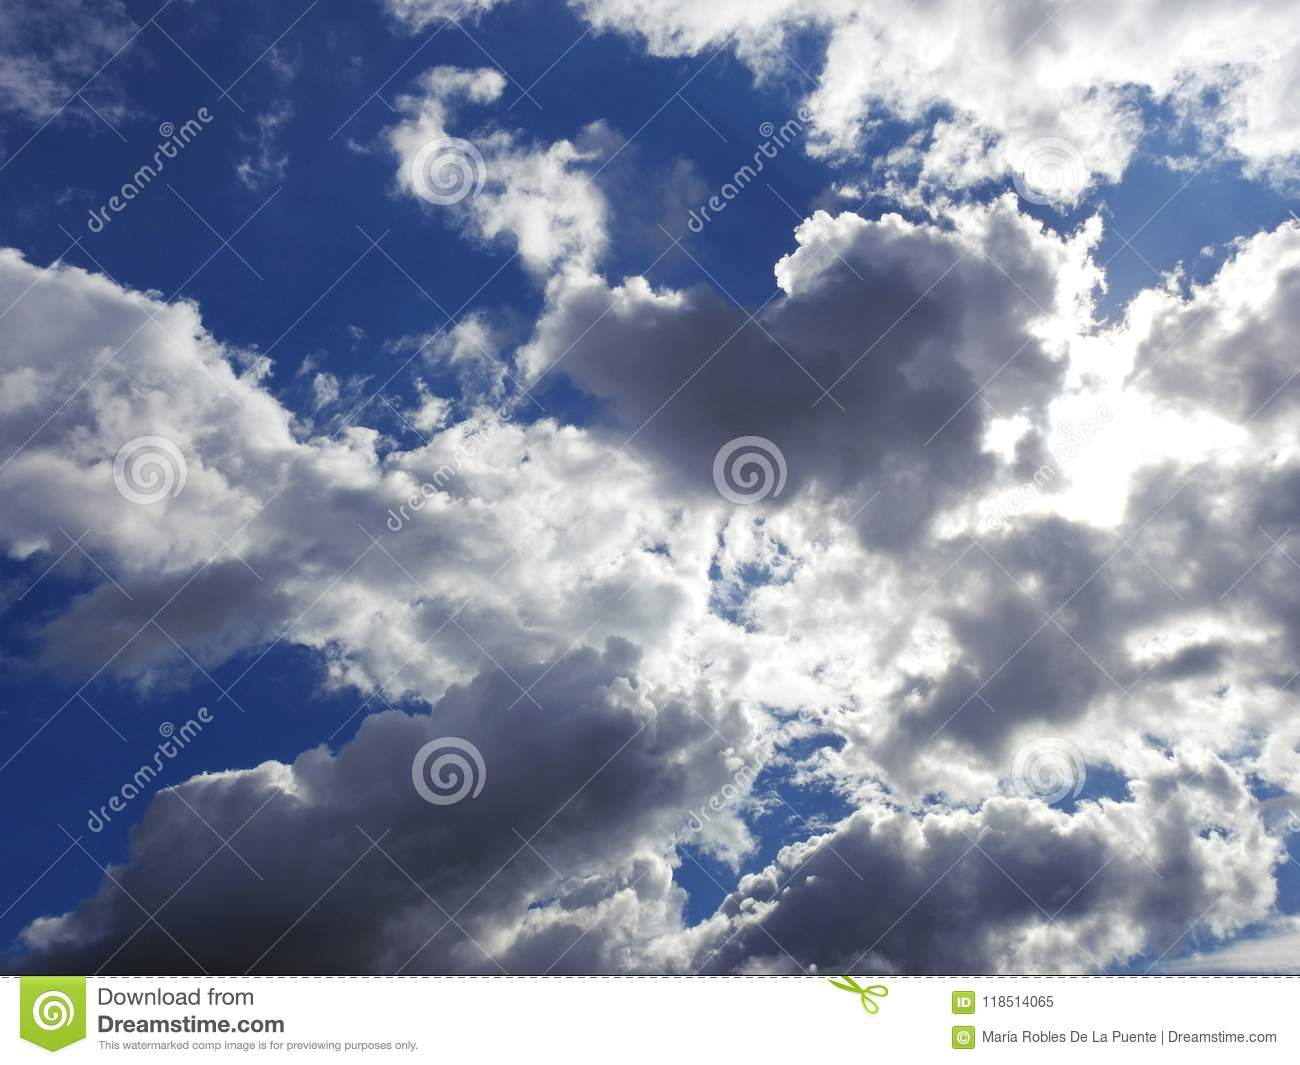 A wonderful blue sky with white and gray clouds